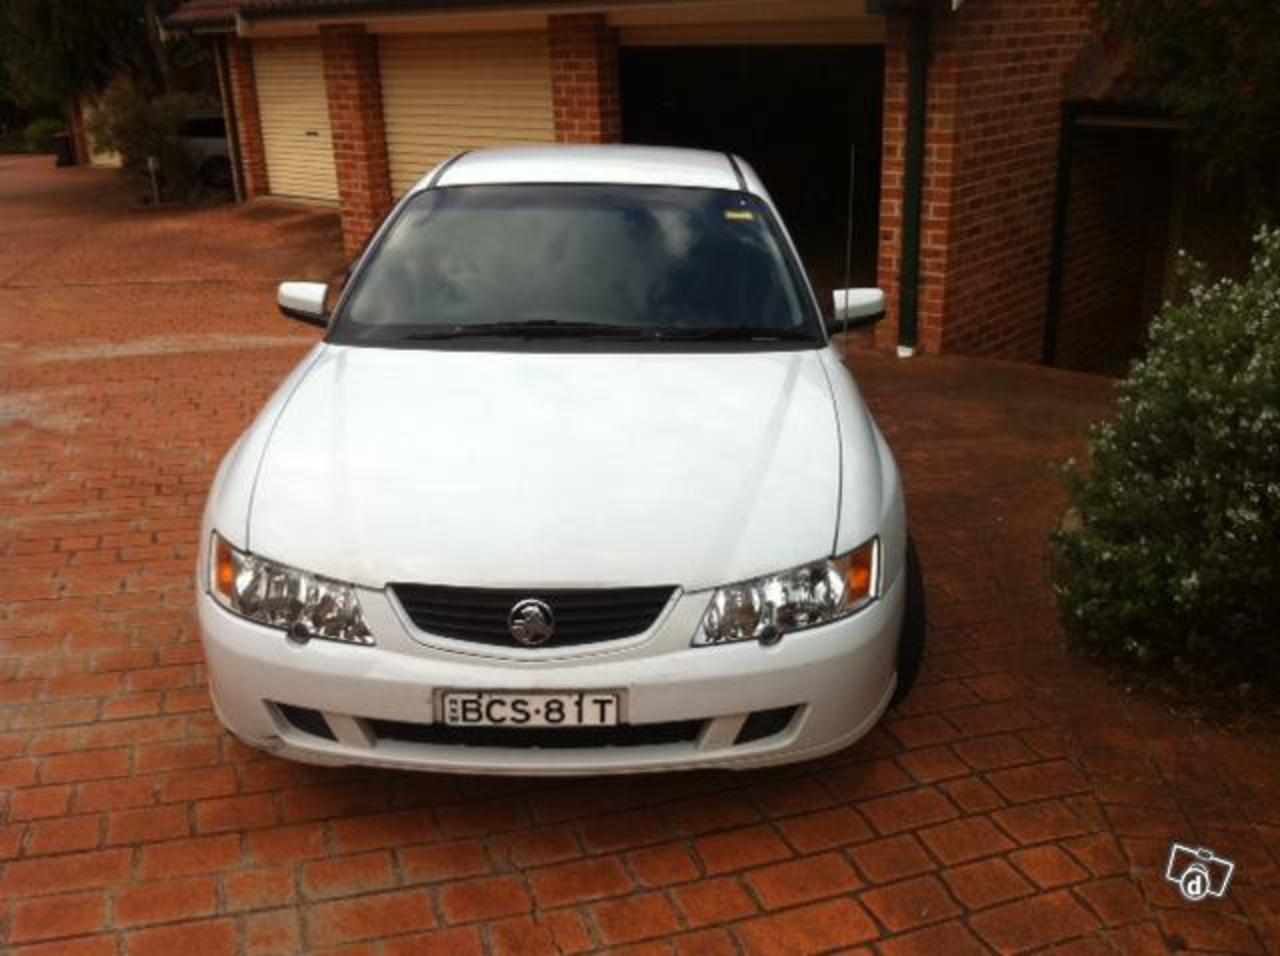 2003 White Holden VY Acclaim+4extra alloy wheels